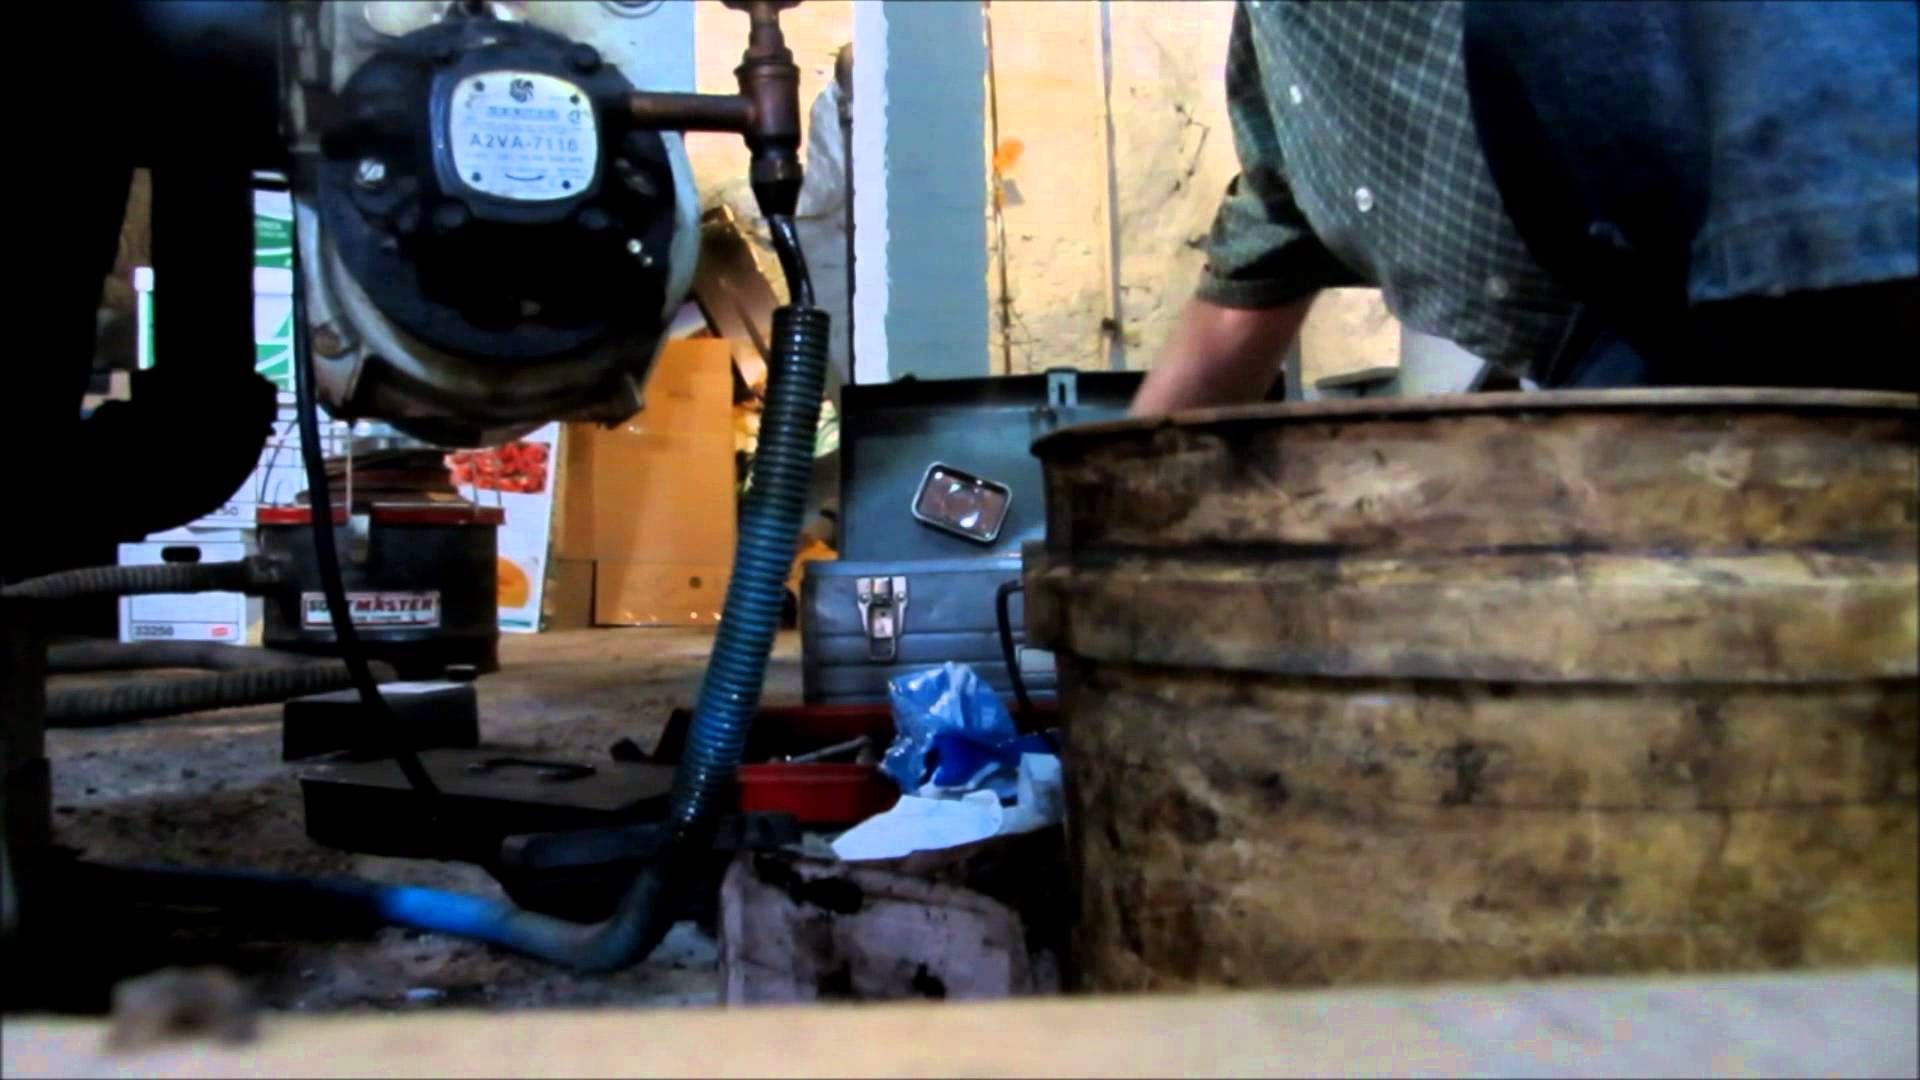 Oil Fired Boiler How To Clean And Oil Fired Boiler Cleaning Boiler Oils